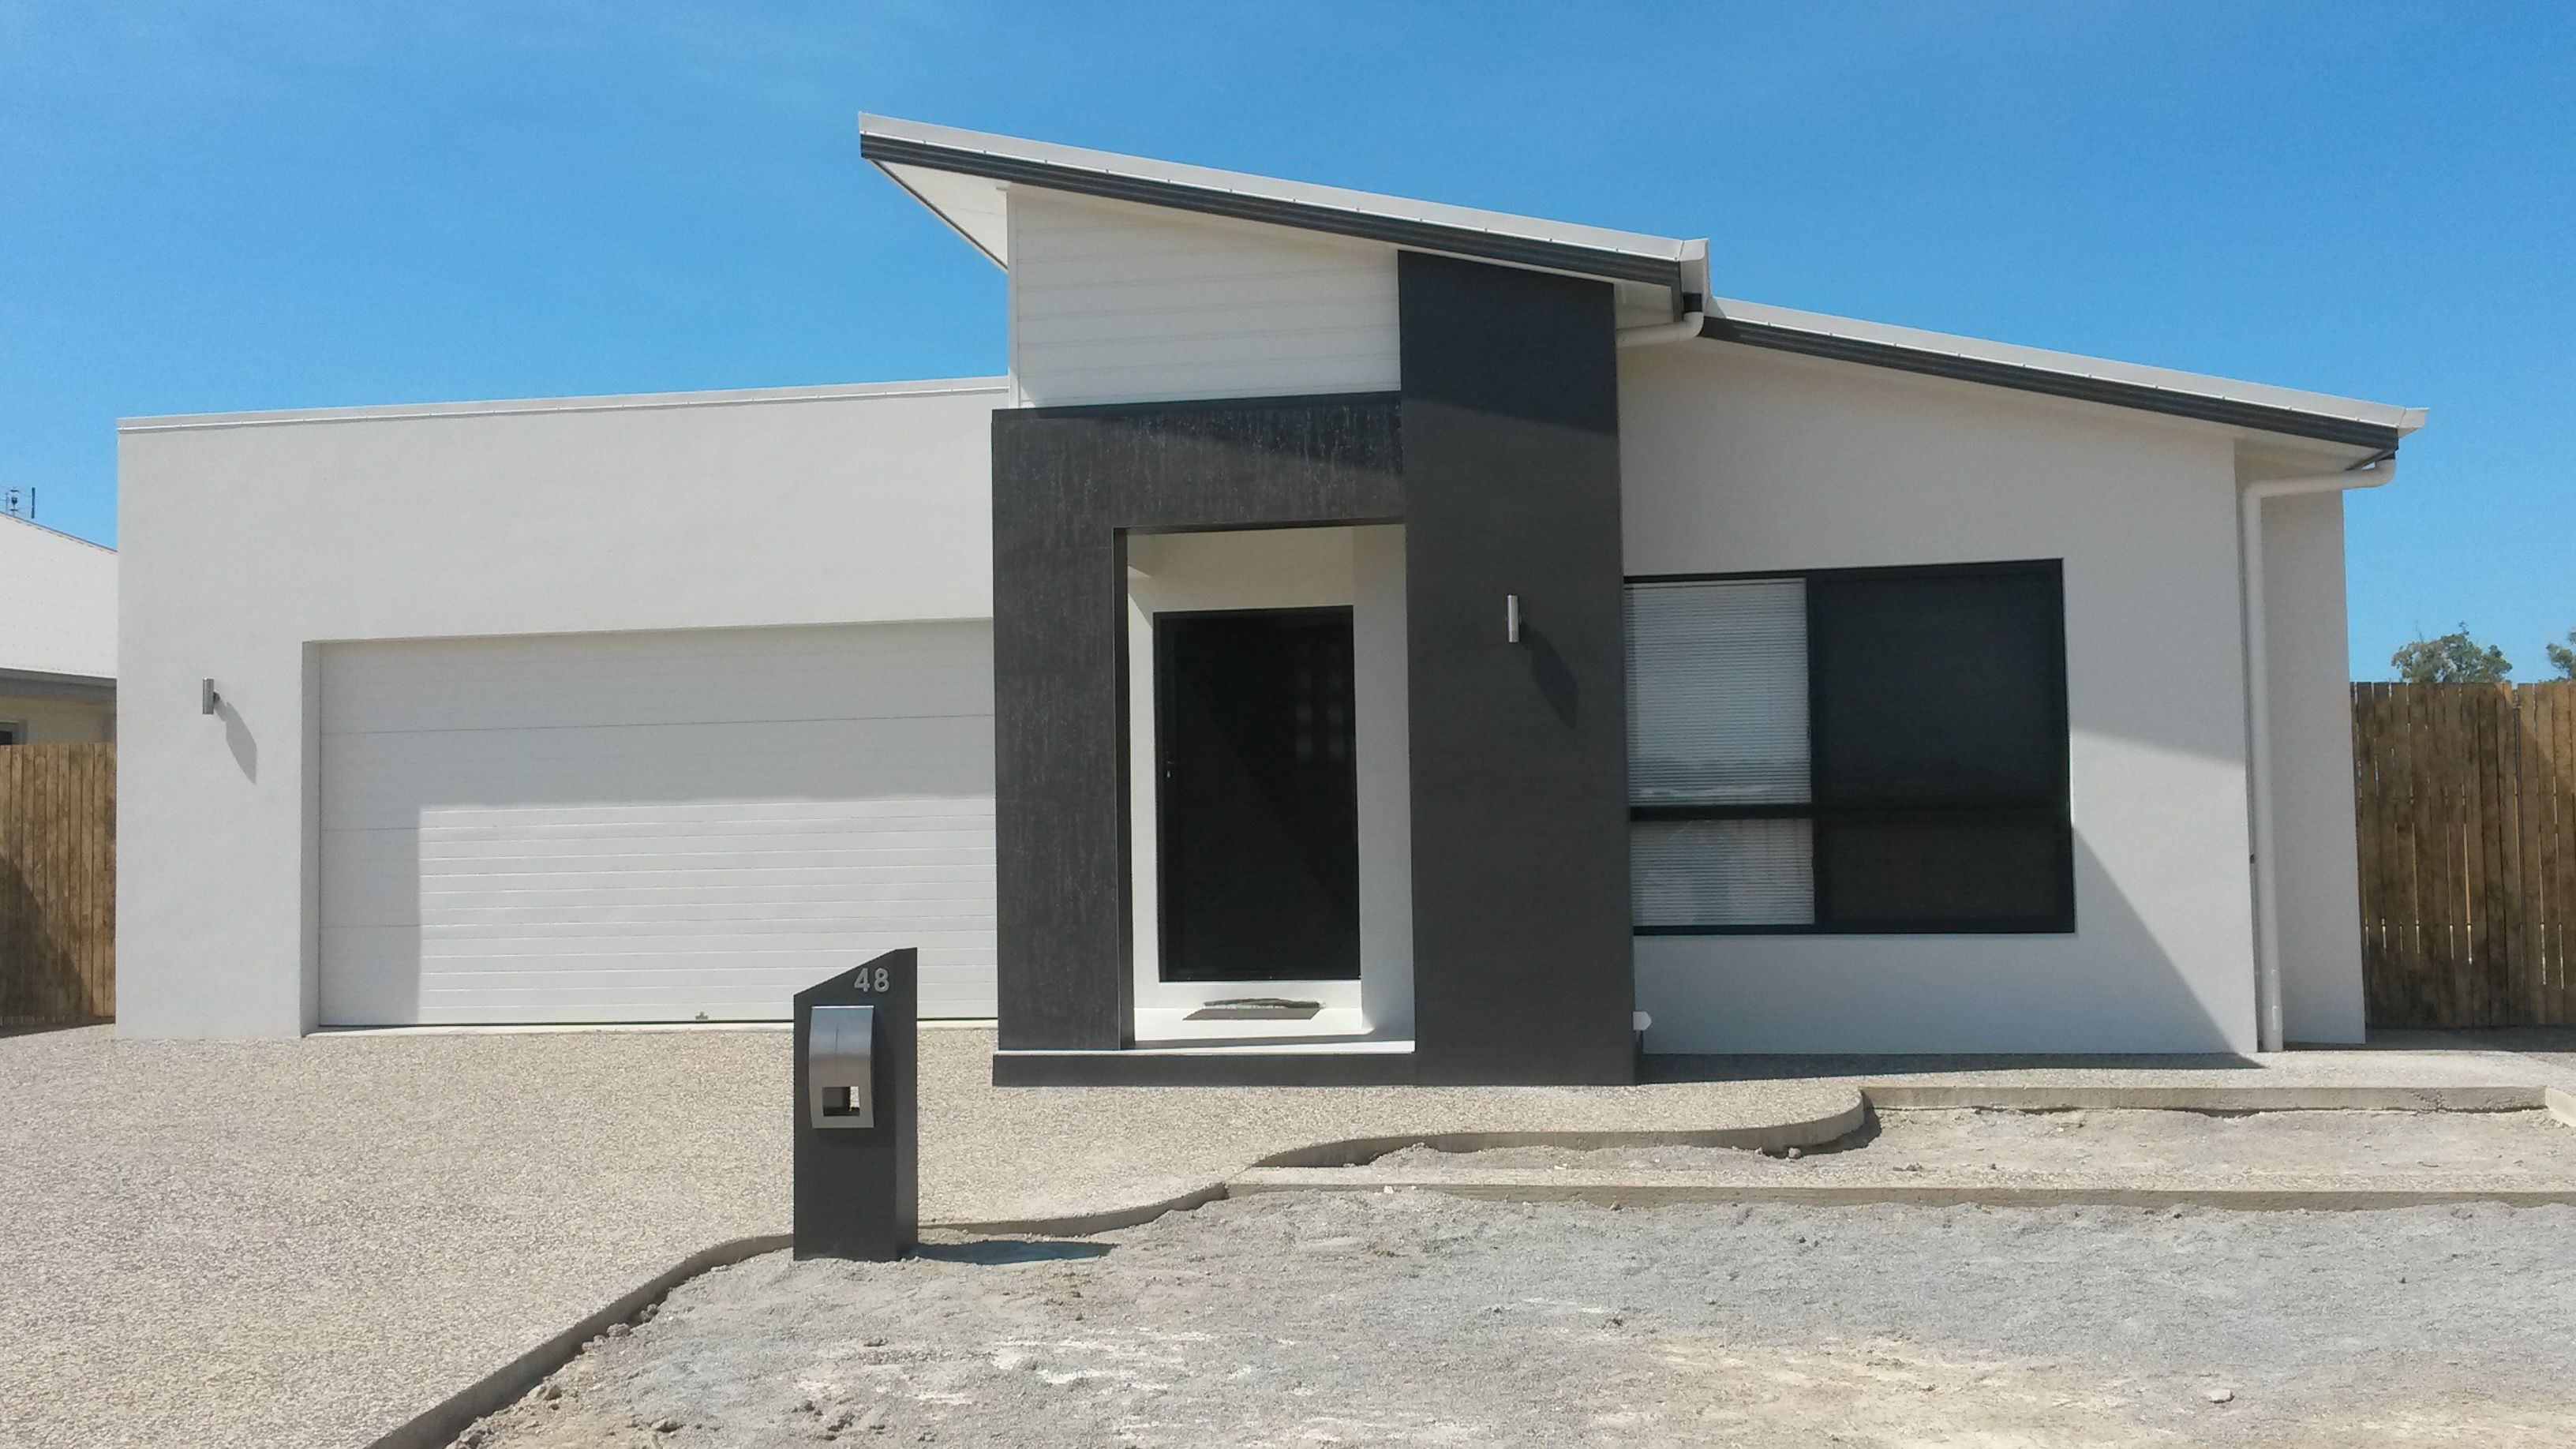 New house facade with skillion roof charcoal grey and white design new home by grady homes in townsville australia